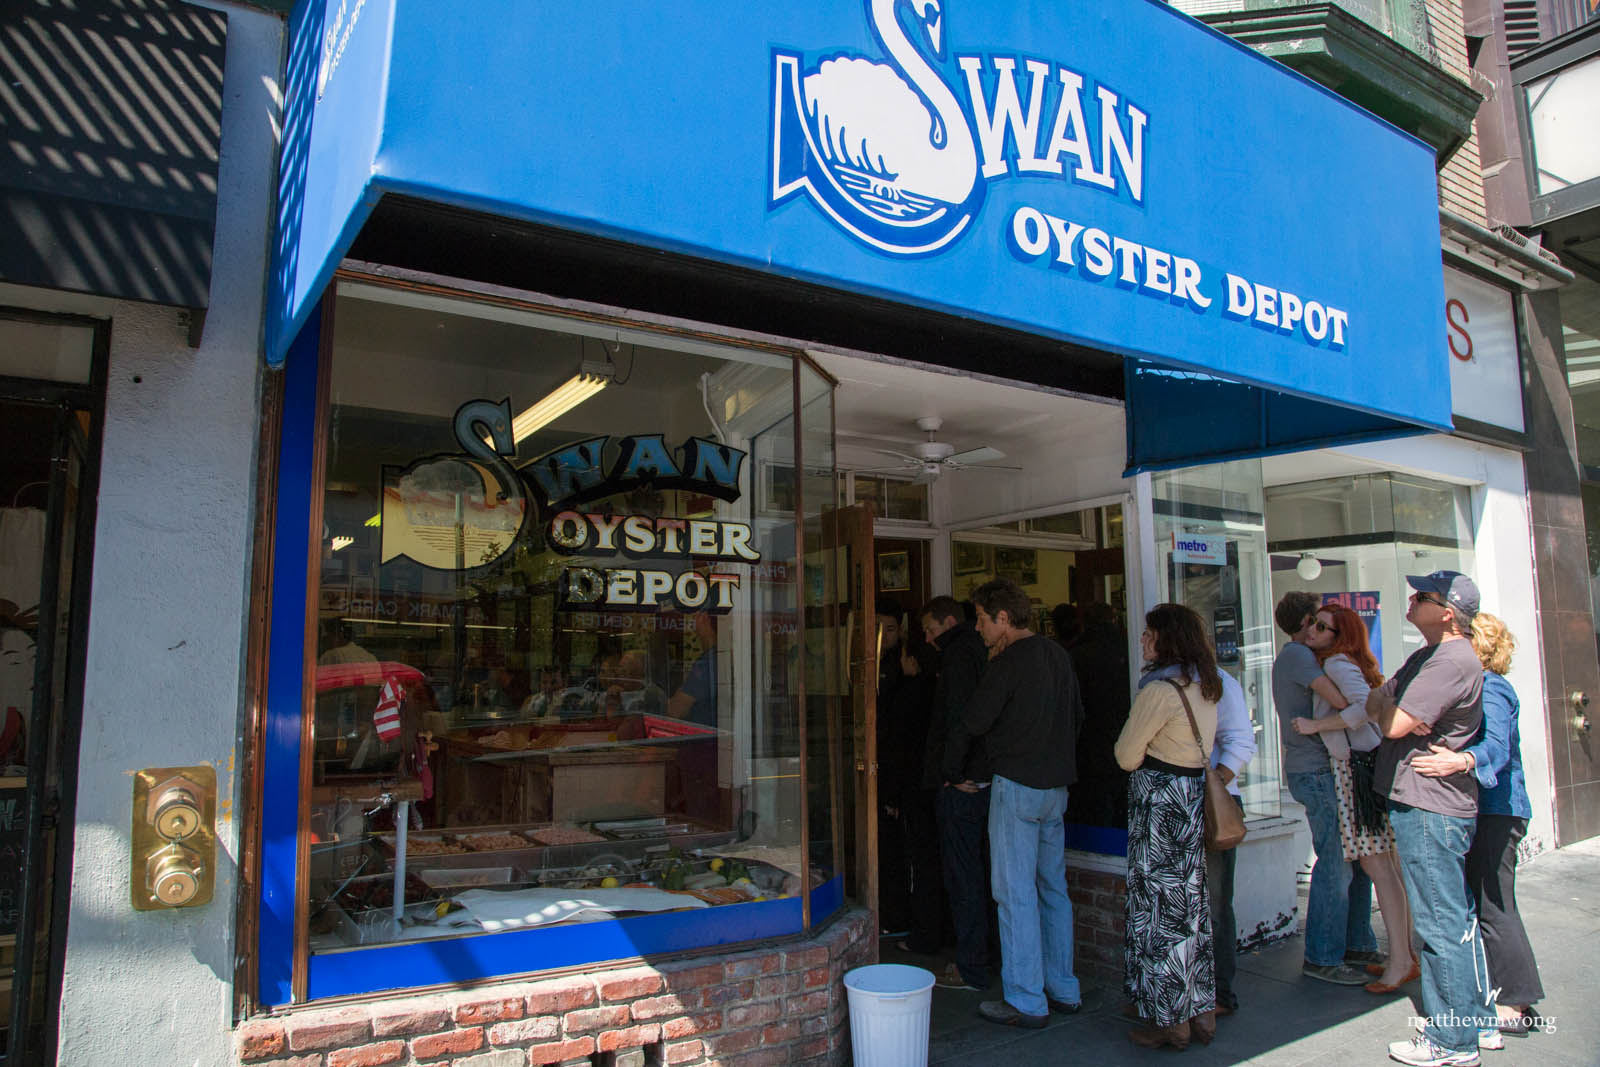 Lining up at Swan Oyster Depot